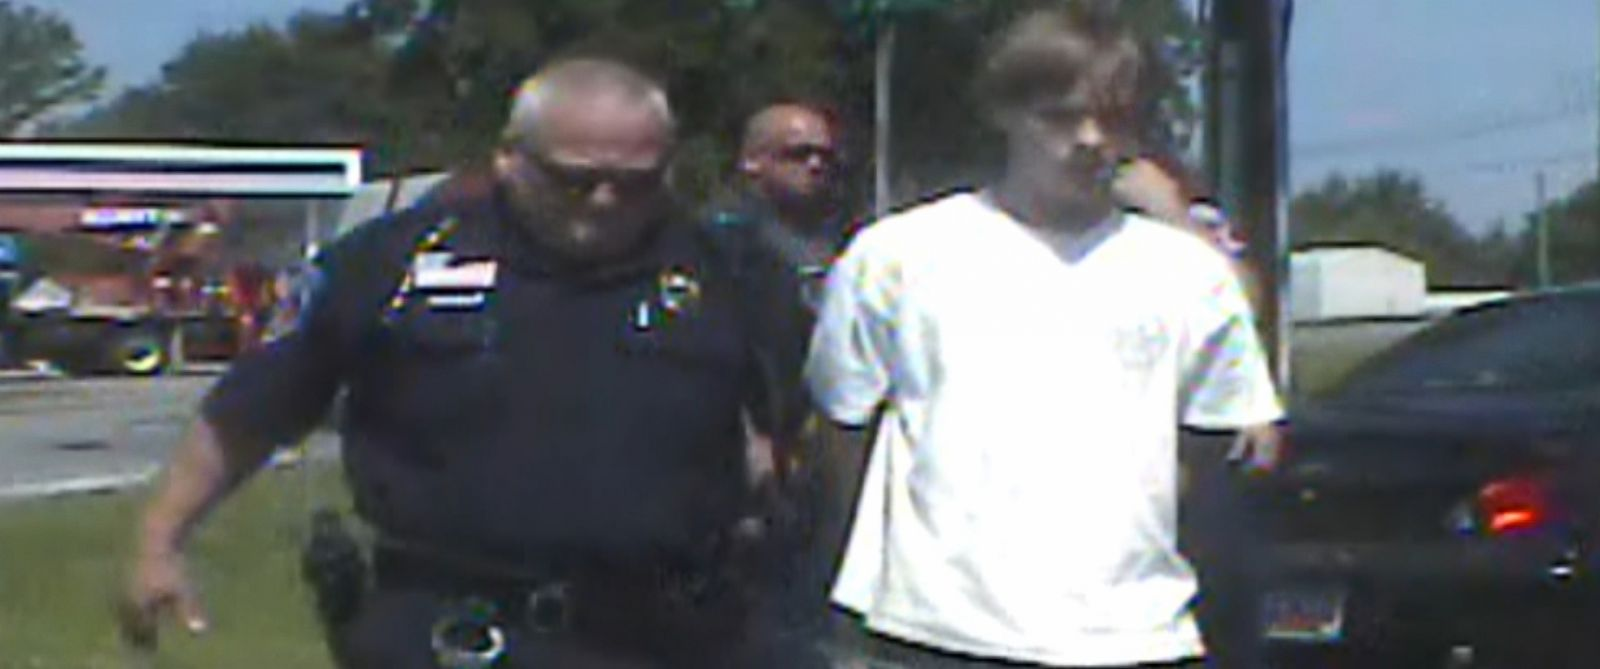 PHOTO: Suspected gunman Dylann Roof, 21, was arrested in Shelby, North Carolina.